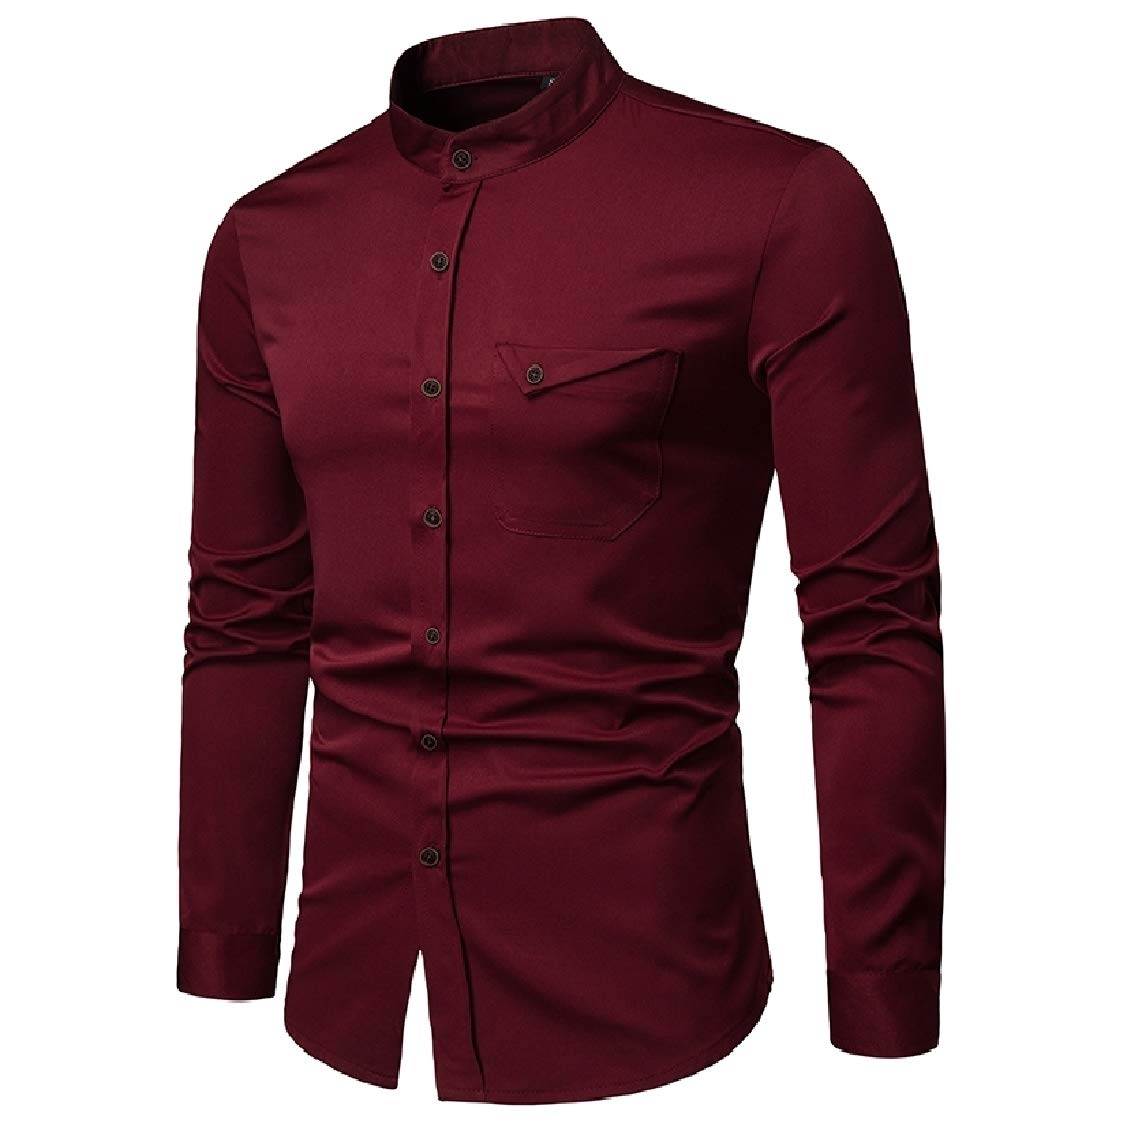 Nanquan Men Stand Collar Casual Button Up Regular Fit Long Sleeve Solid Shirts